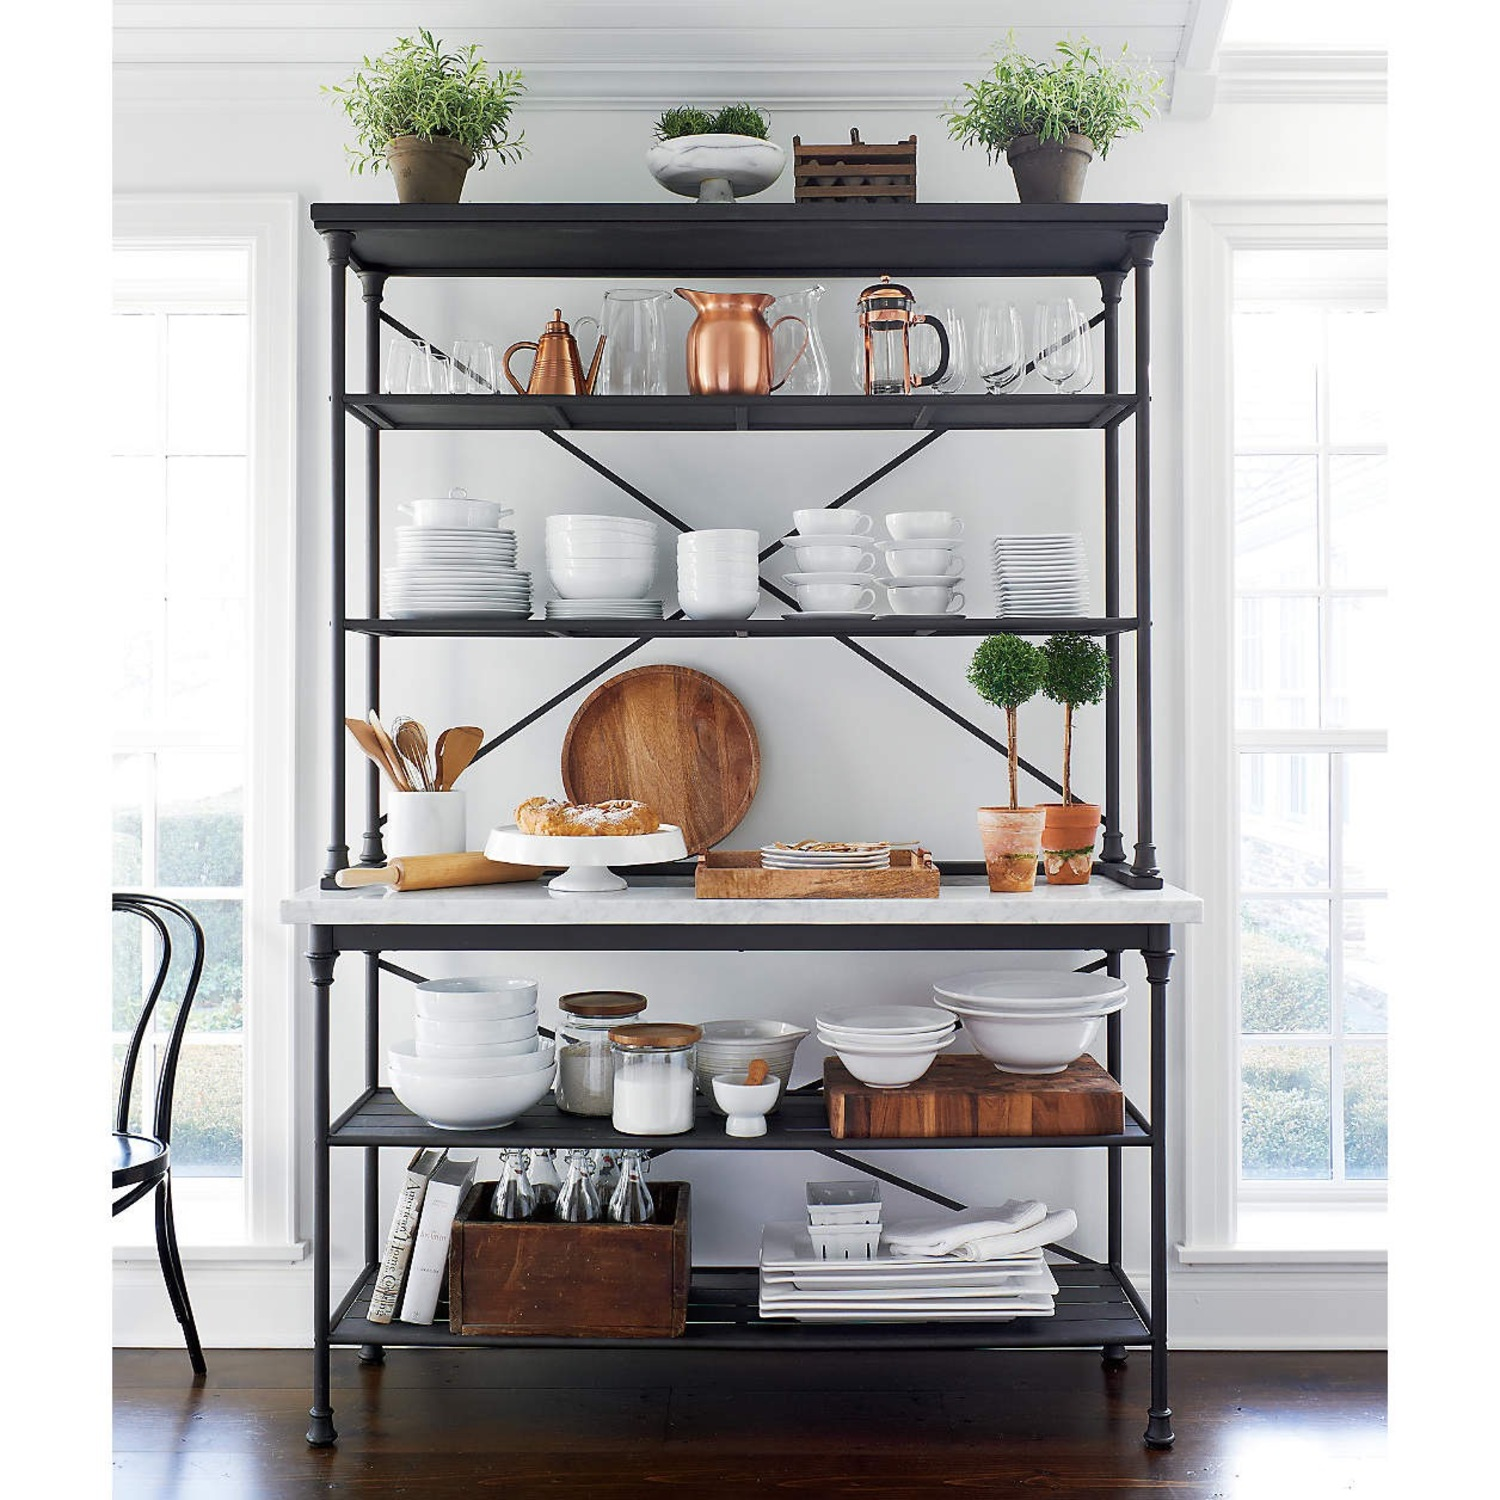 Crate & Barrel French Kitchen Bakers Rack with Hutch - image-8